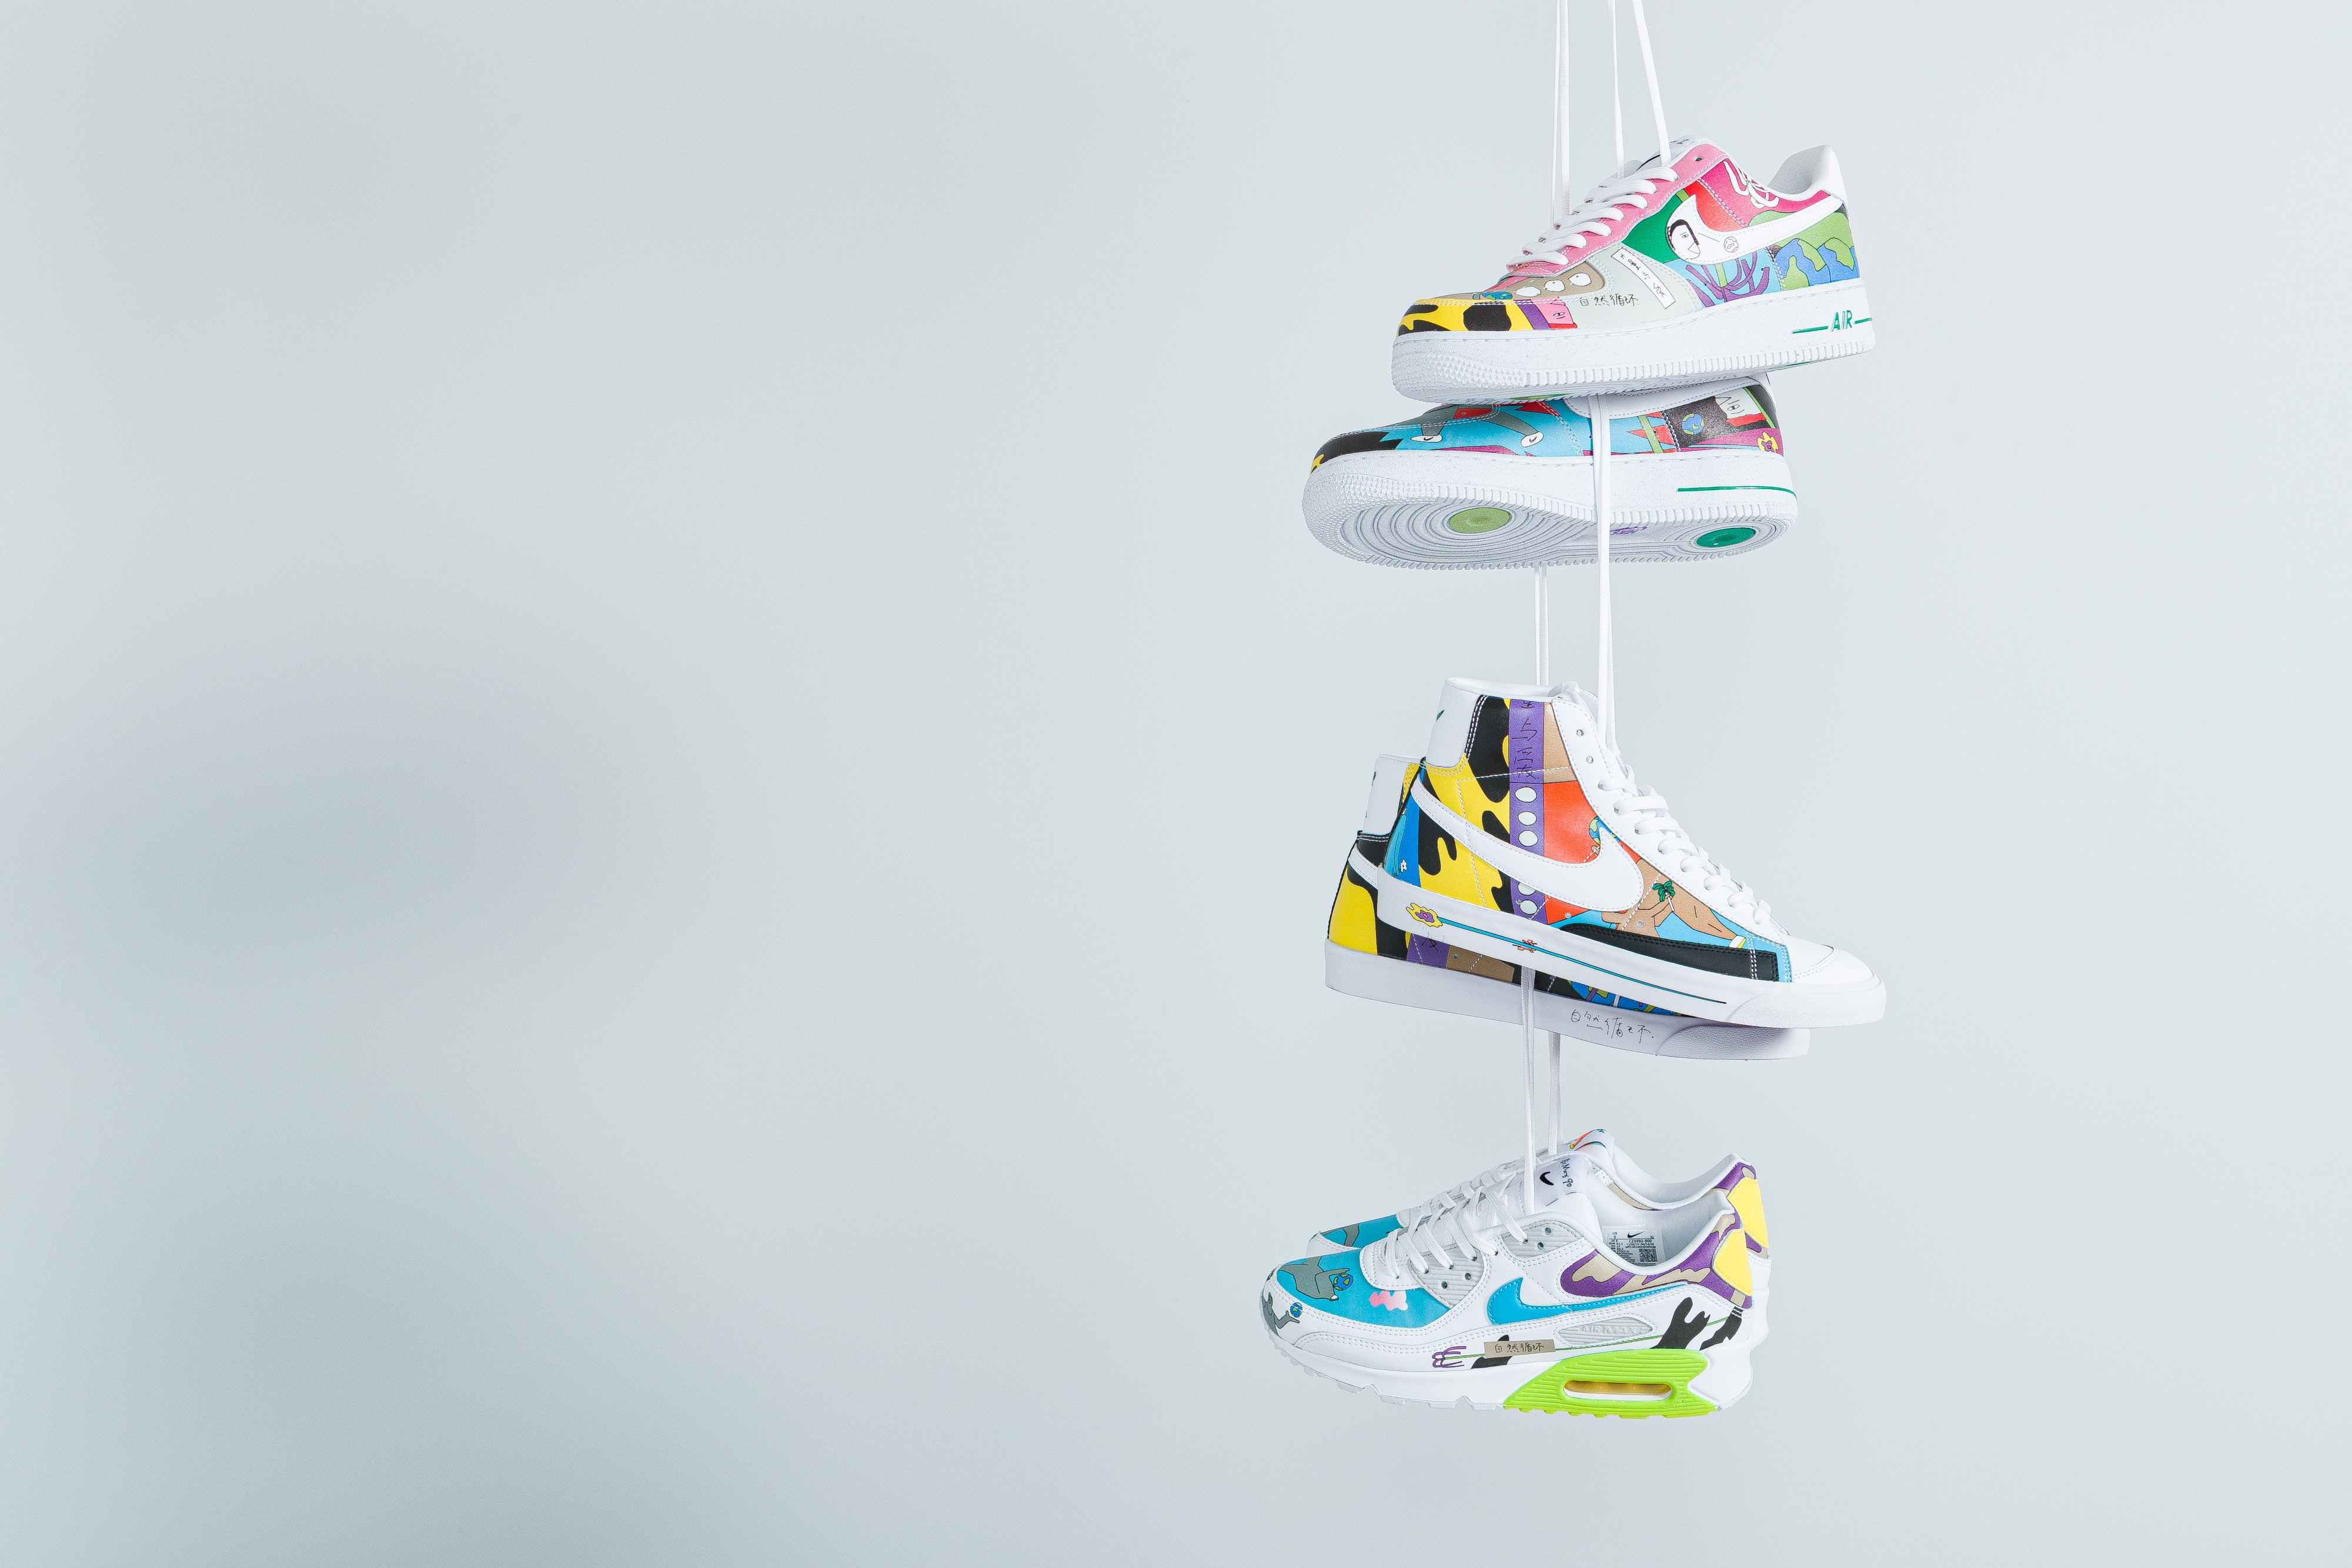 Nike X Ruohan Wang - Flyleather Air Force 1, Air Max 90 & Blazer Mid 77